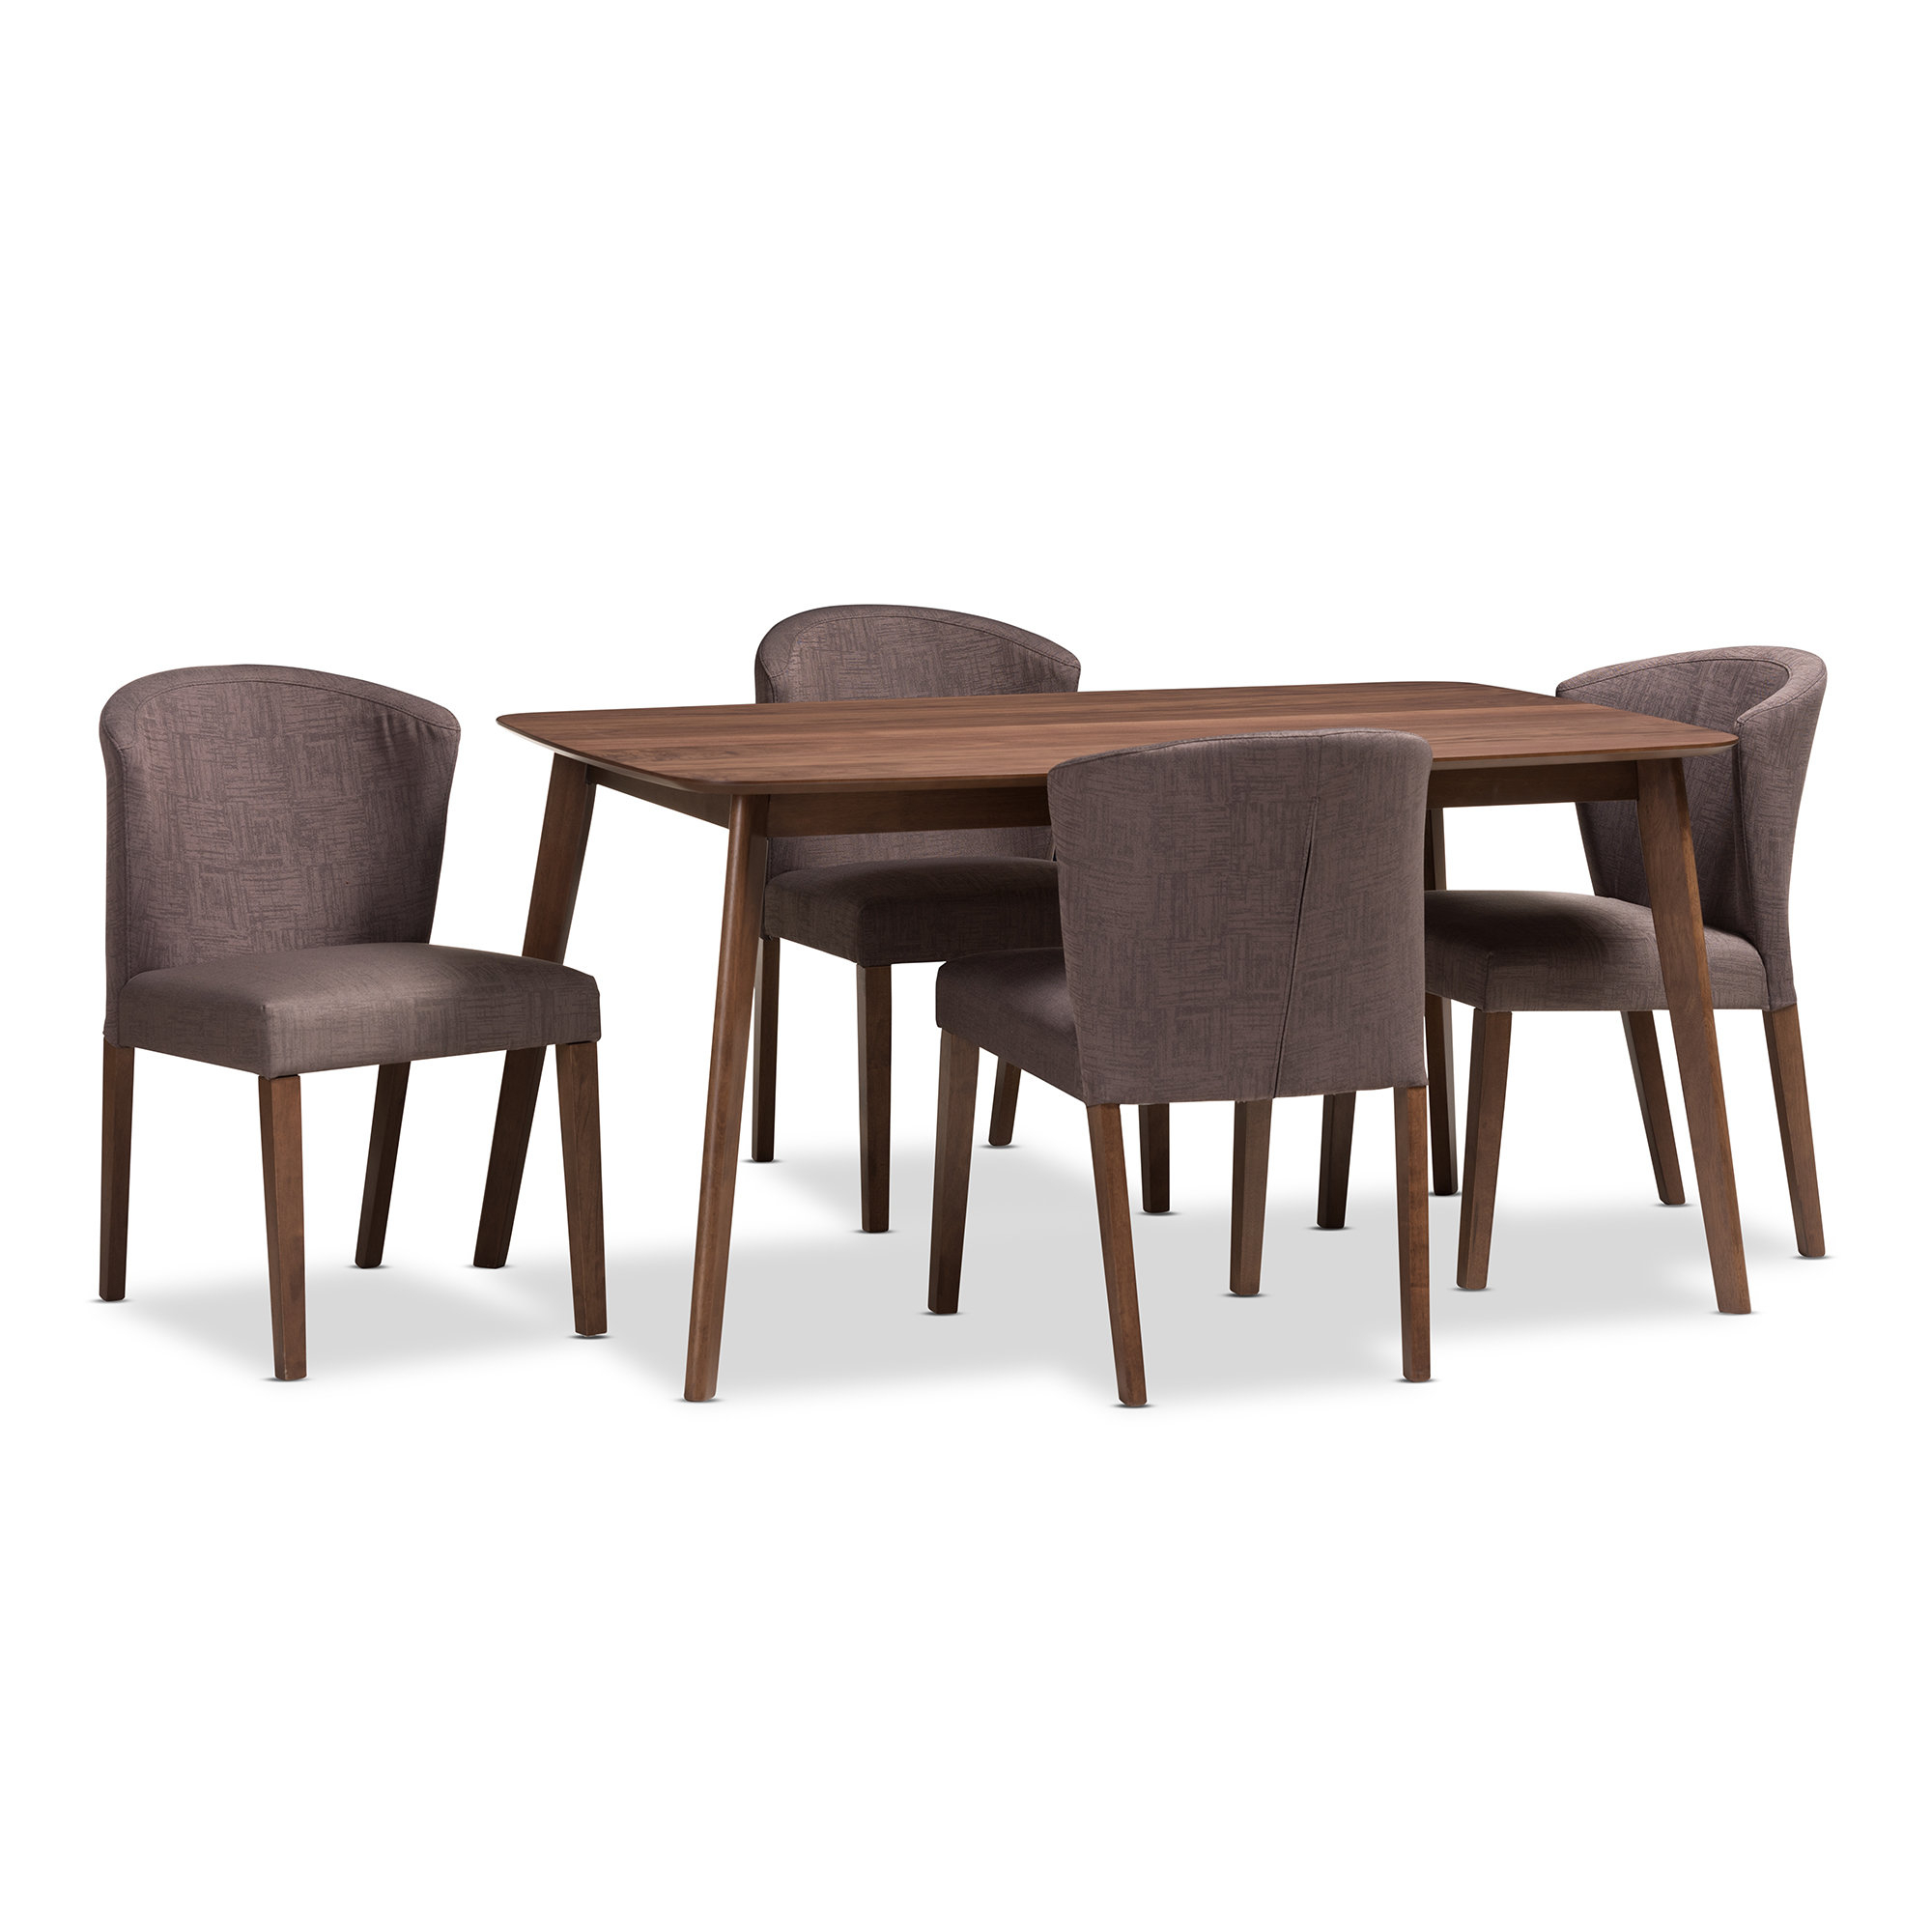 Famous George Oliver Dingler Mid Century Wood 5 Piece Dining Set With Regard To Tejeda 5 Piece Dining Sets (View 4 of 20)